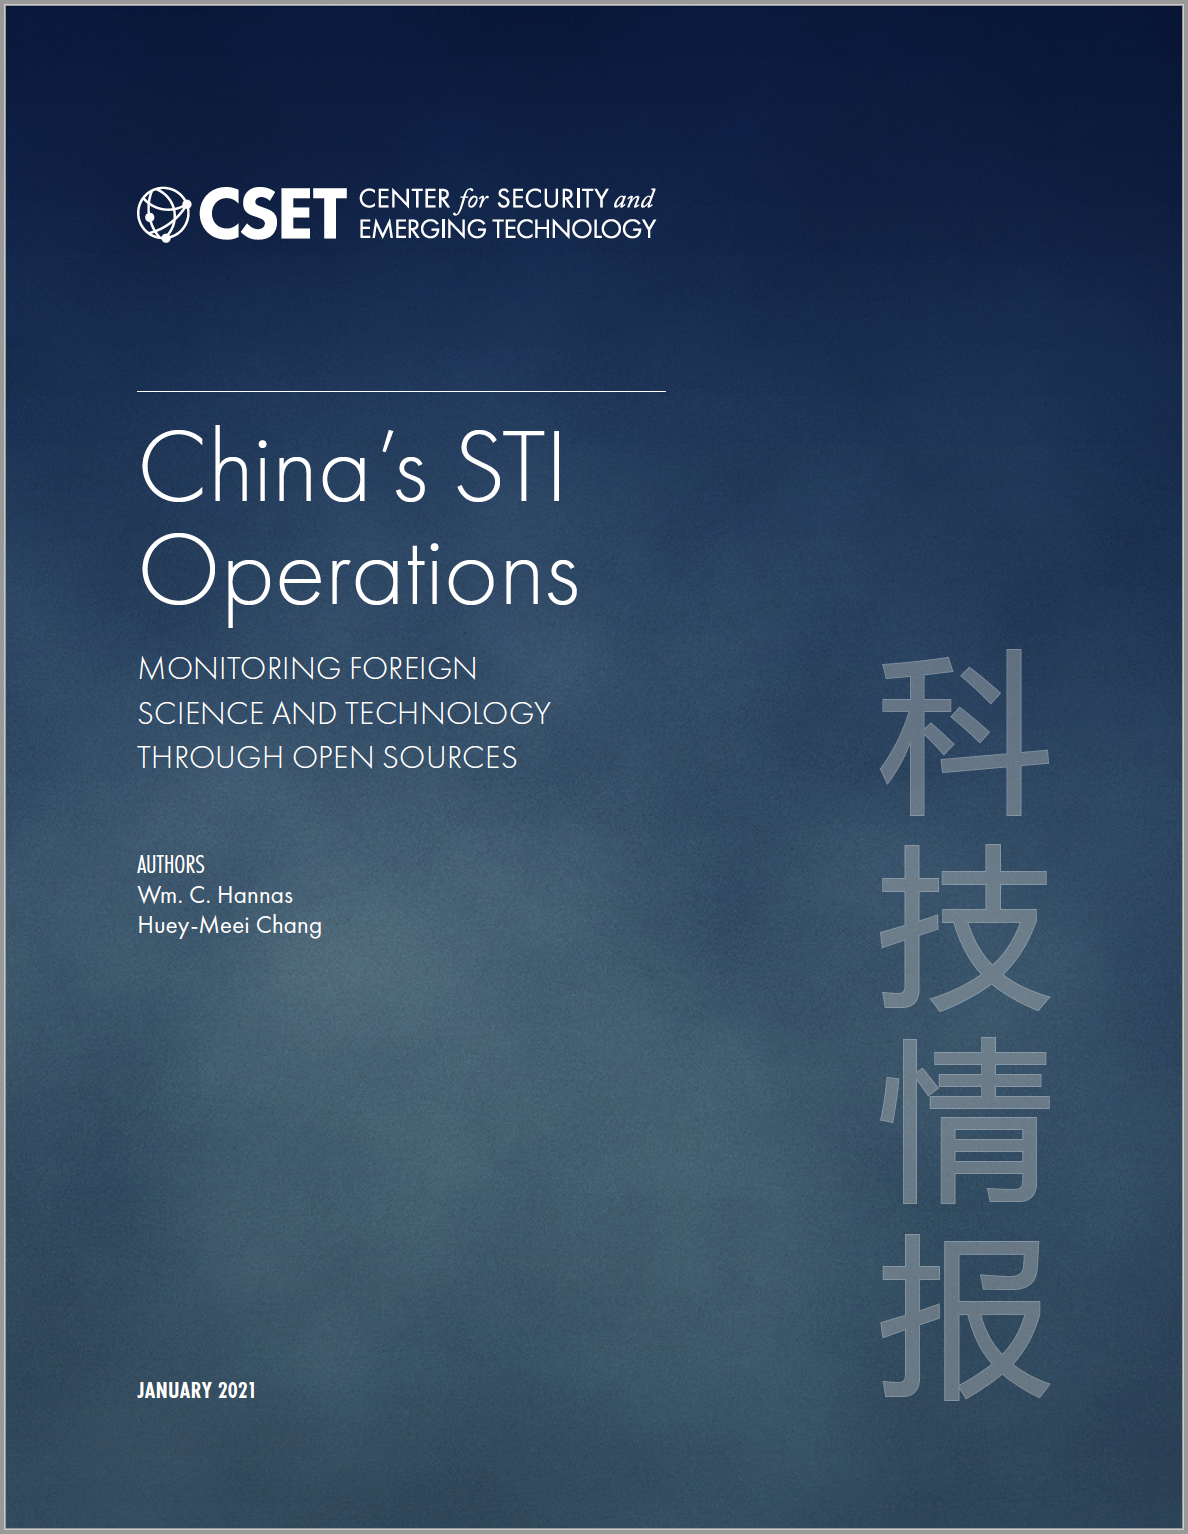 CSET-China's STI Operations Image